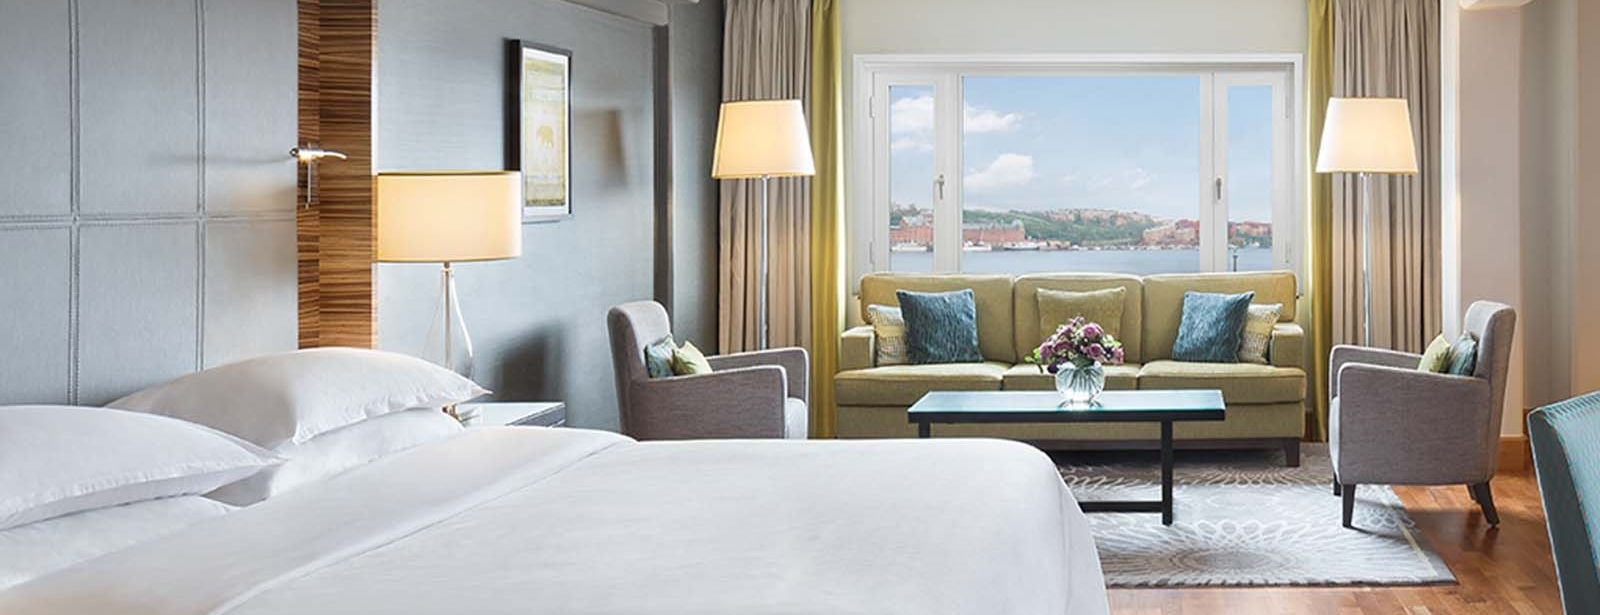 Superior suite overlooking Stockholm City Hall and Lake Mälaren